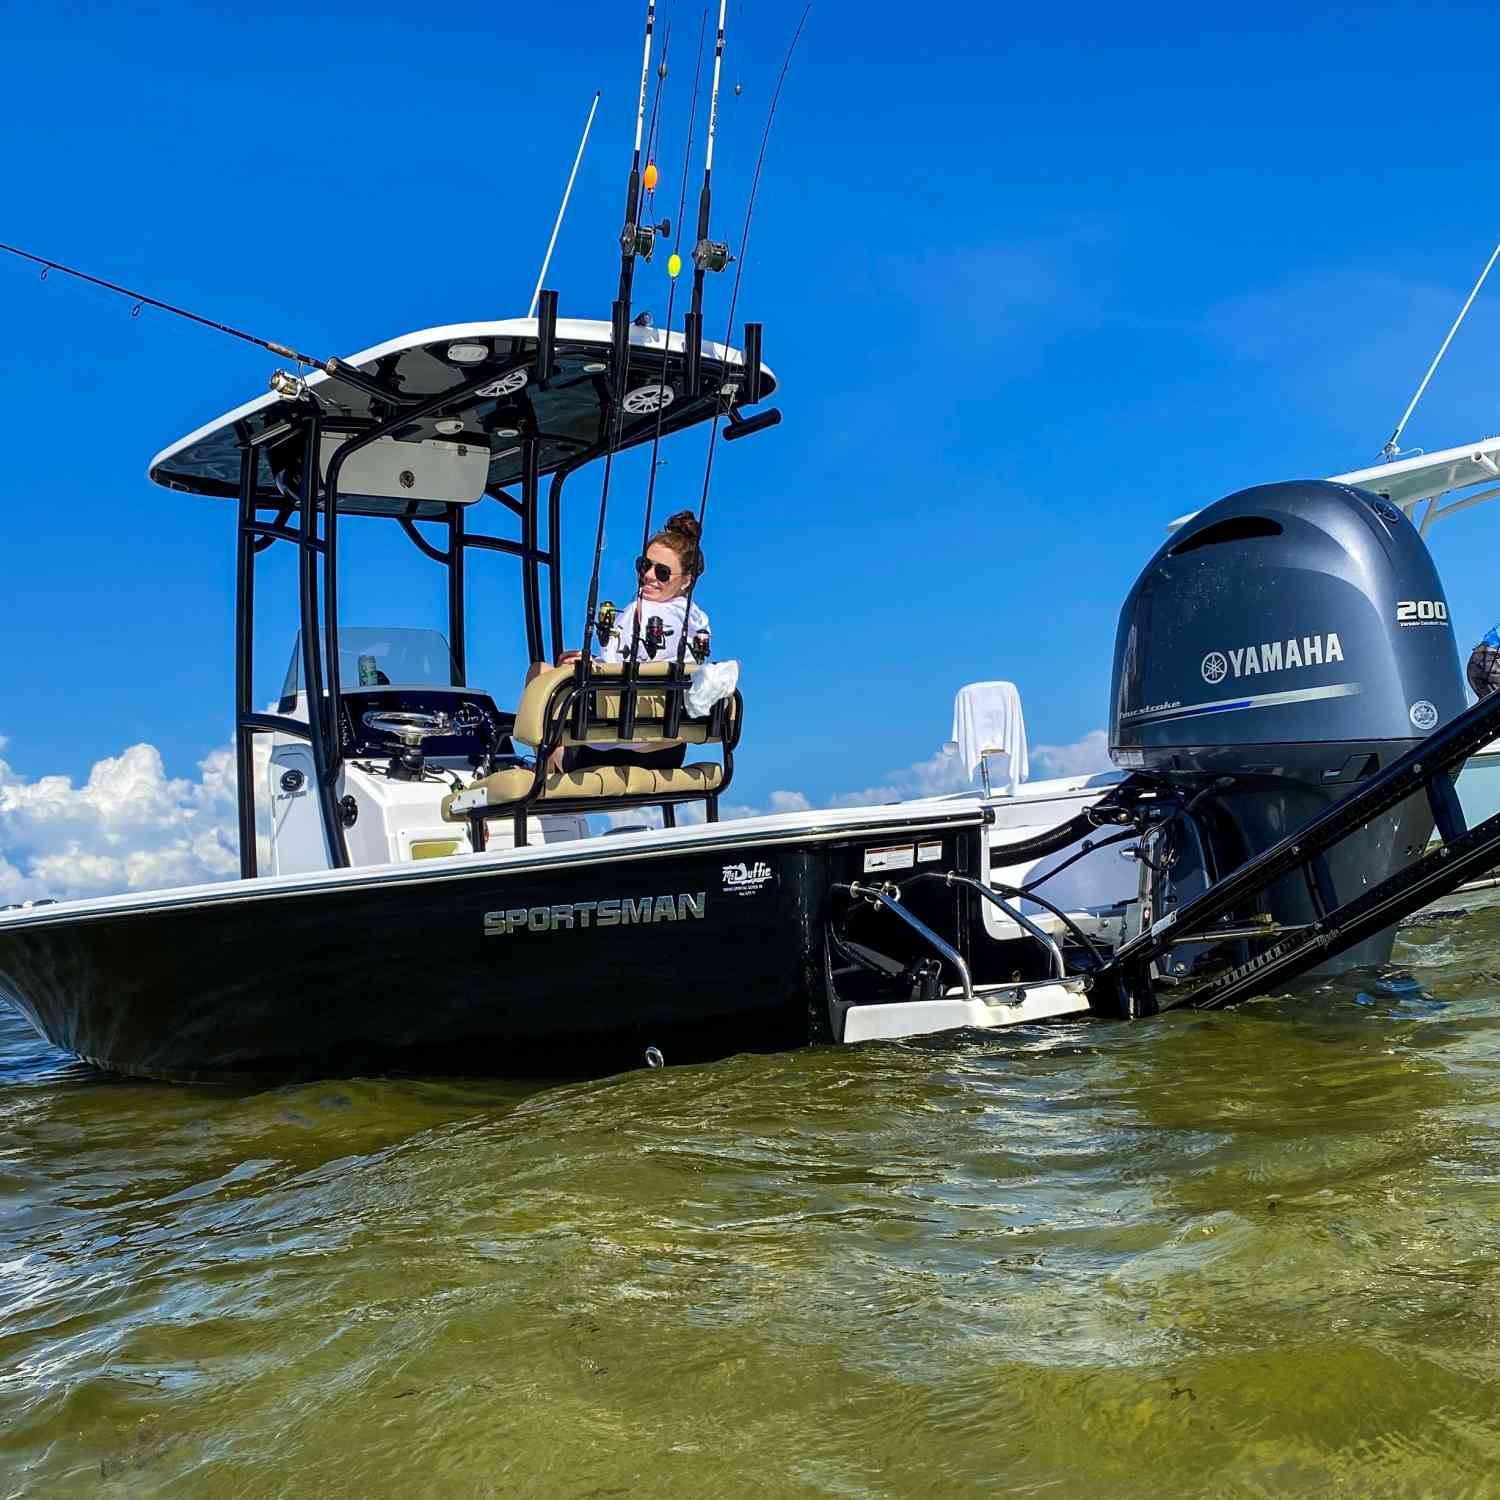 Title: Yeah it's a sportsman! - On board their Sportsman Masters 227 Bay Boat - Location: Steinhatchee. Participating in the Photo Contest #SportsmanJune2020